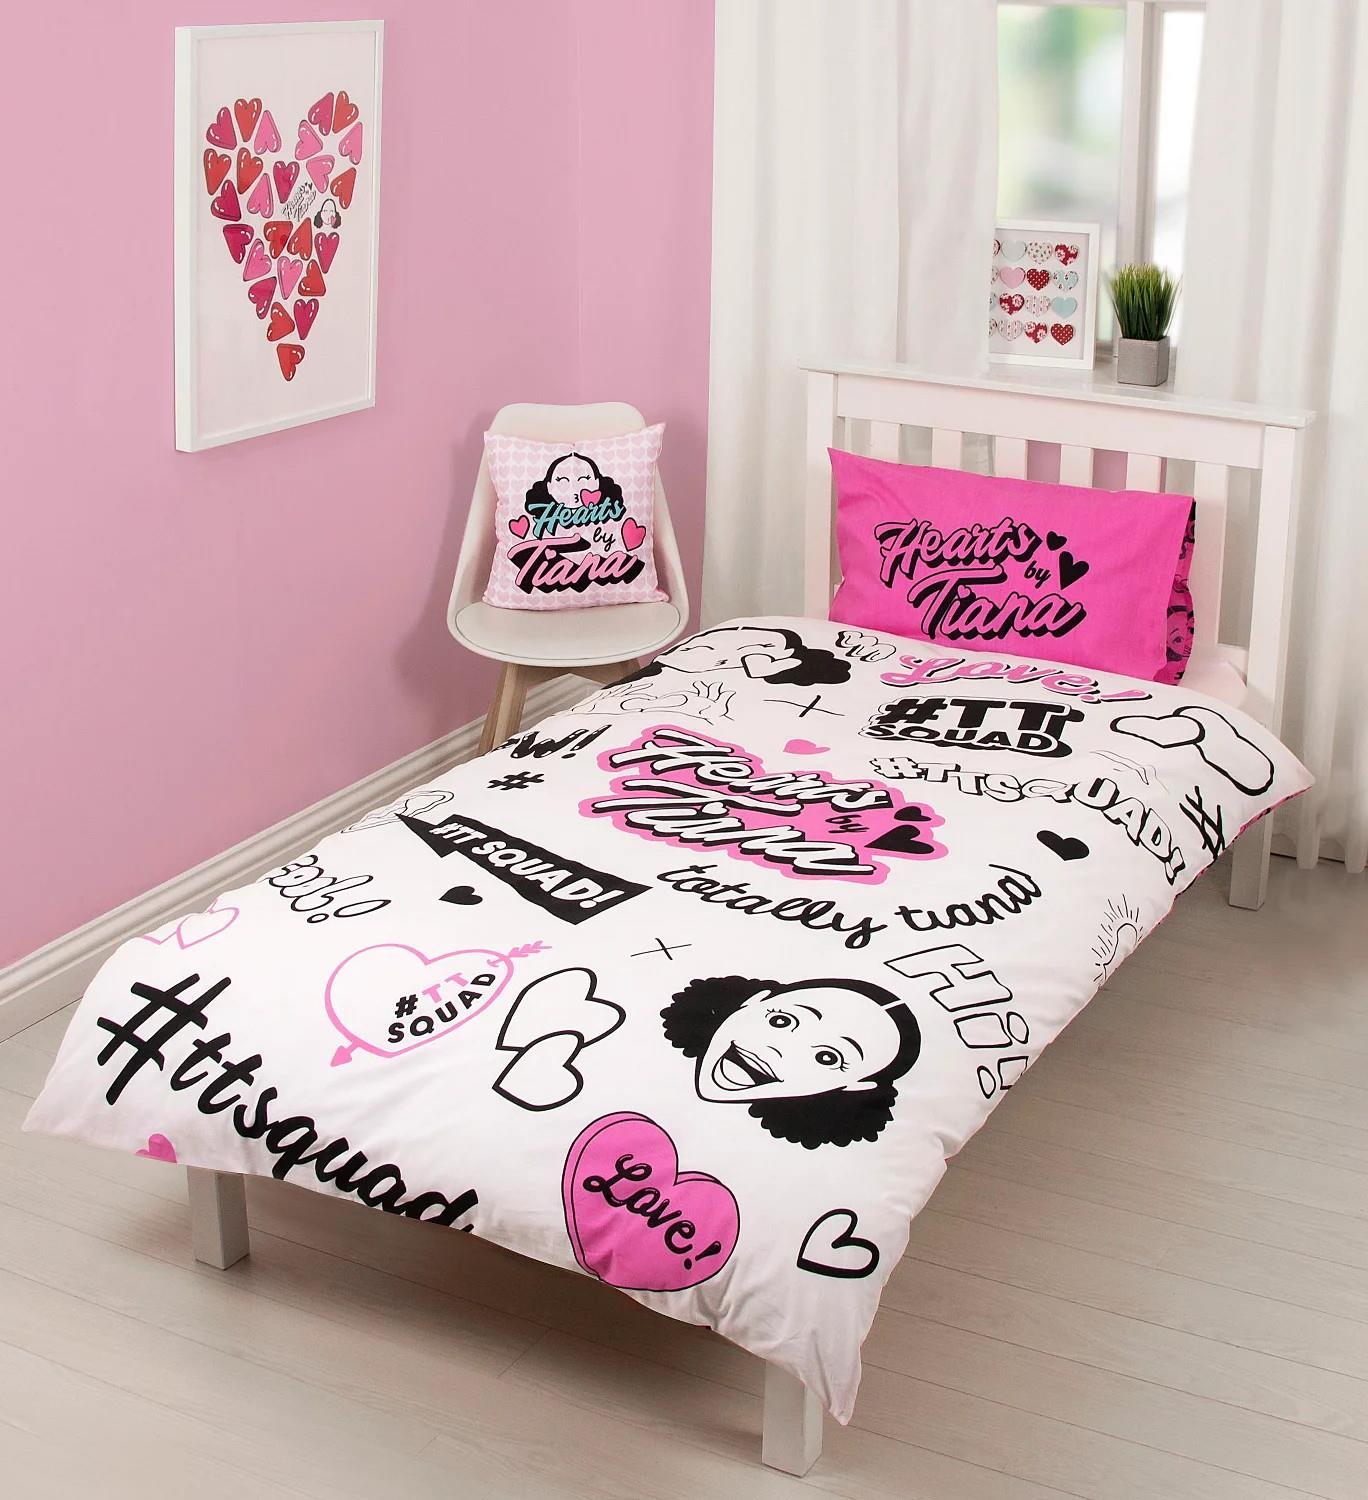 Hearts-by-Tiana-Bedding-Single-Duvet-Cushion-Fleece-Blanket-TTSquad thumbnail 7